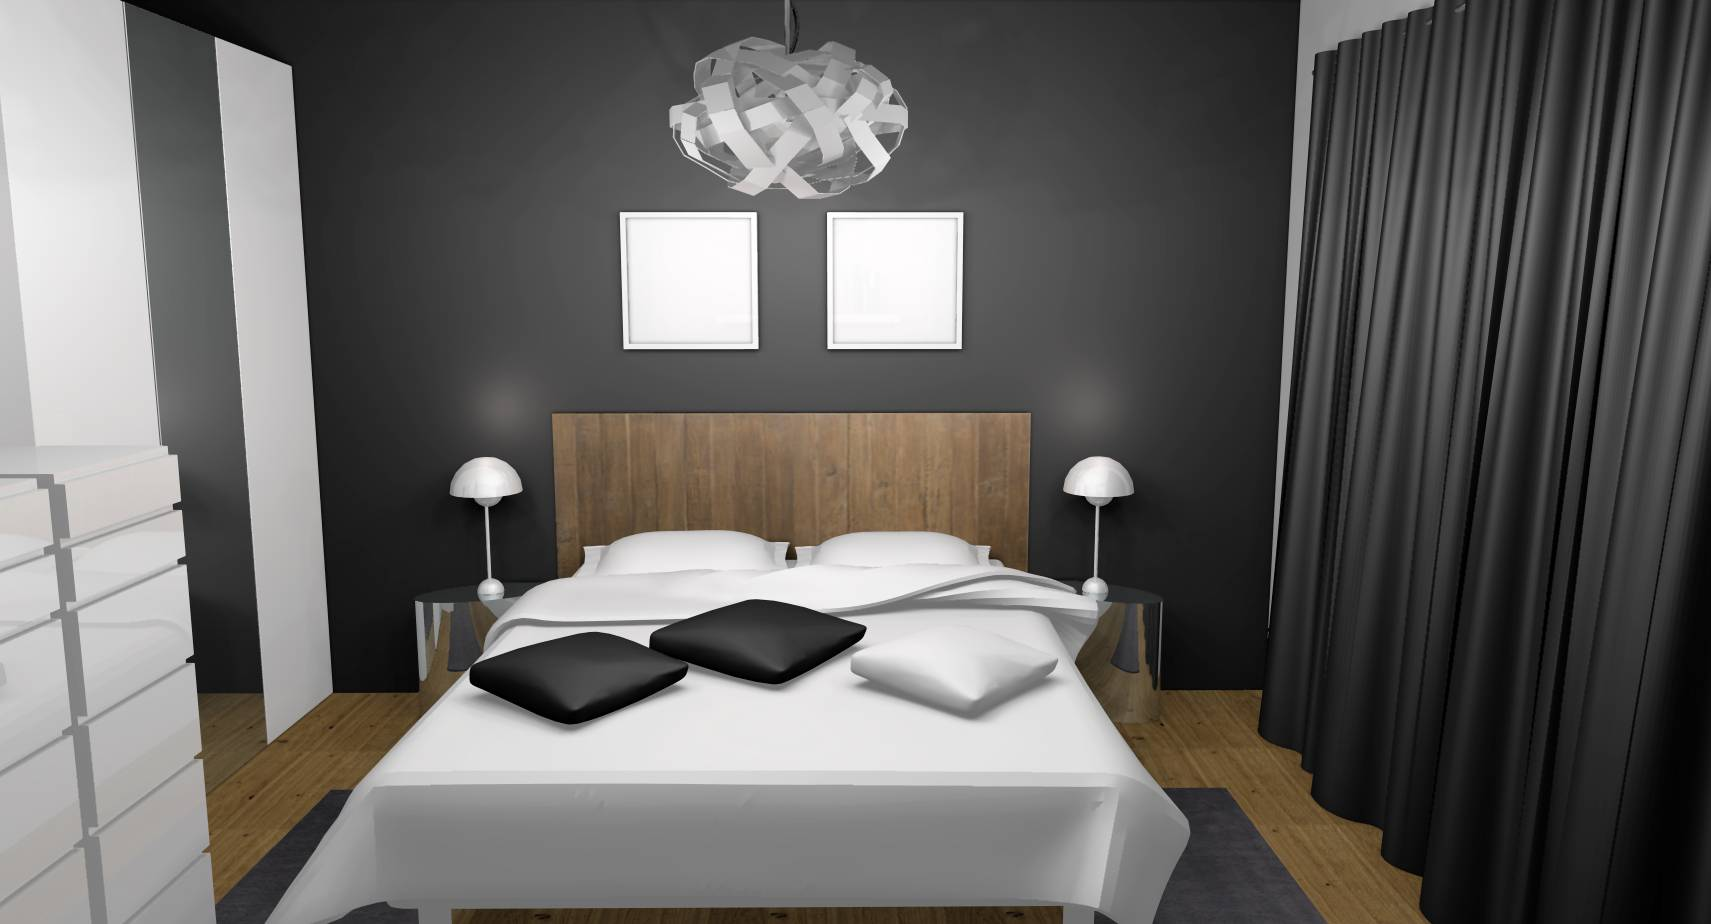 Decoration interieur chambre decoration d une chambre a for Decoration interieur chambre